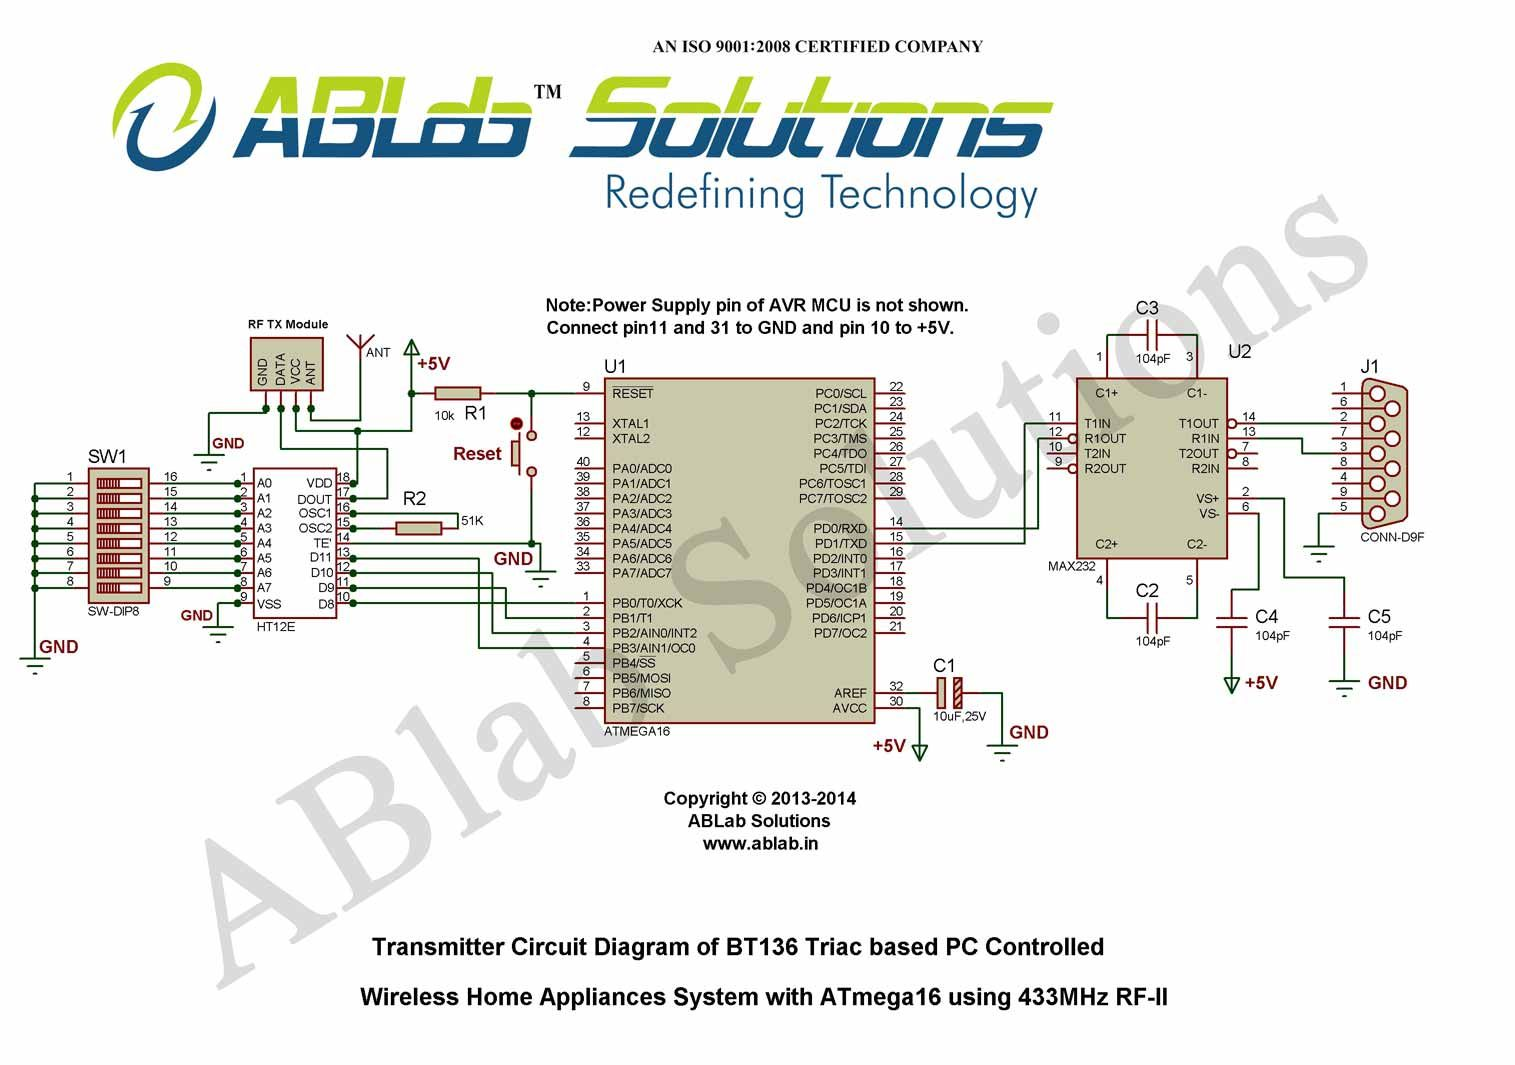 Bt136 Triac Based Pc Controlled Wireless Home Appliances System With Circuit Diagram Avr Atmega16 Microcontroller Using 433mhz Rf Ii Transmitter